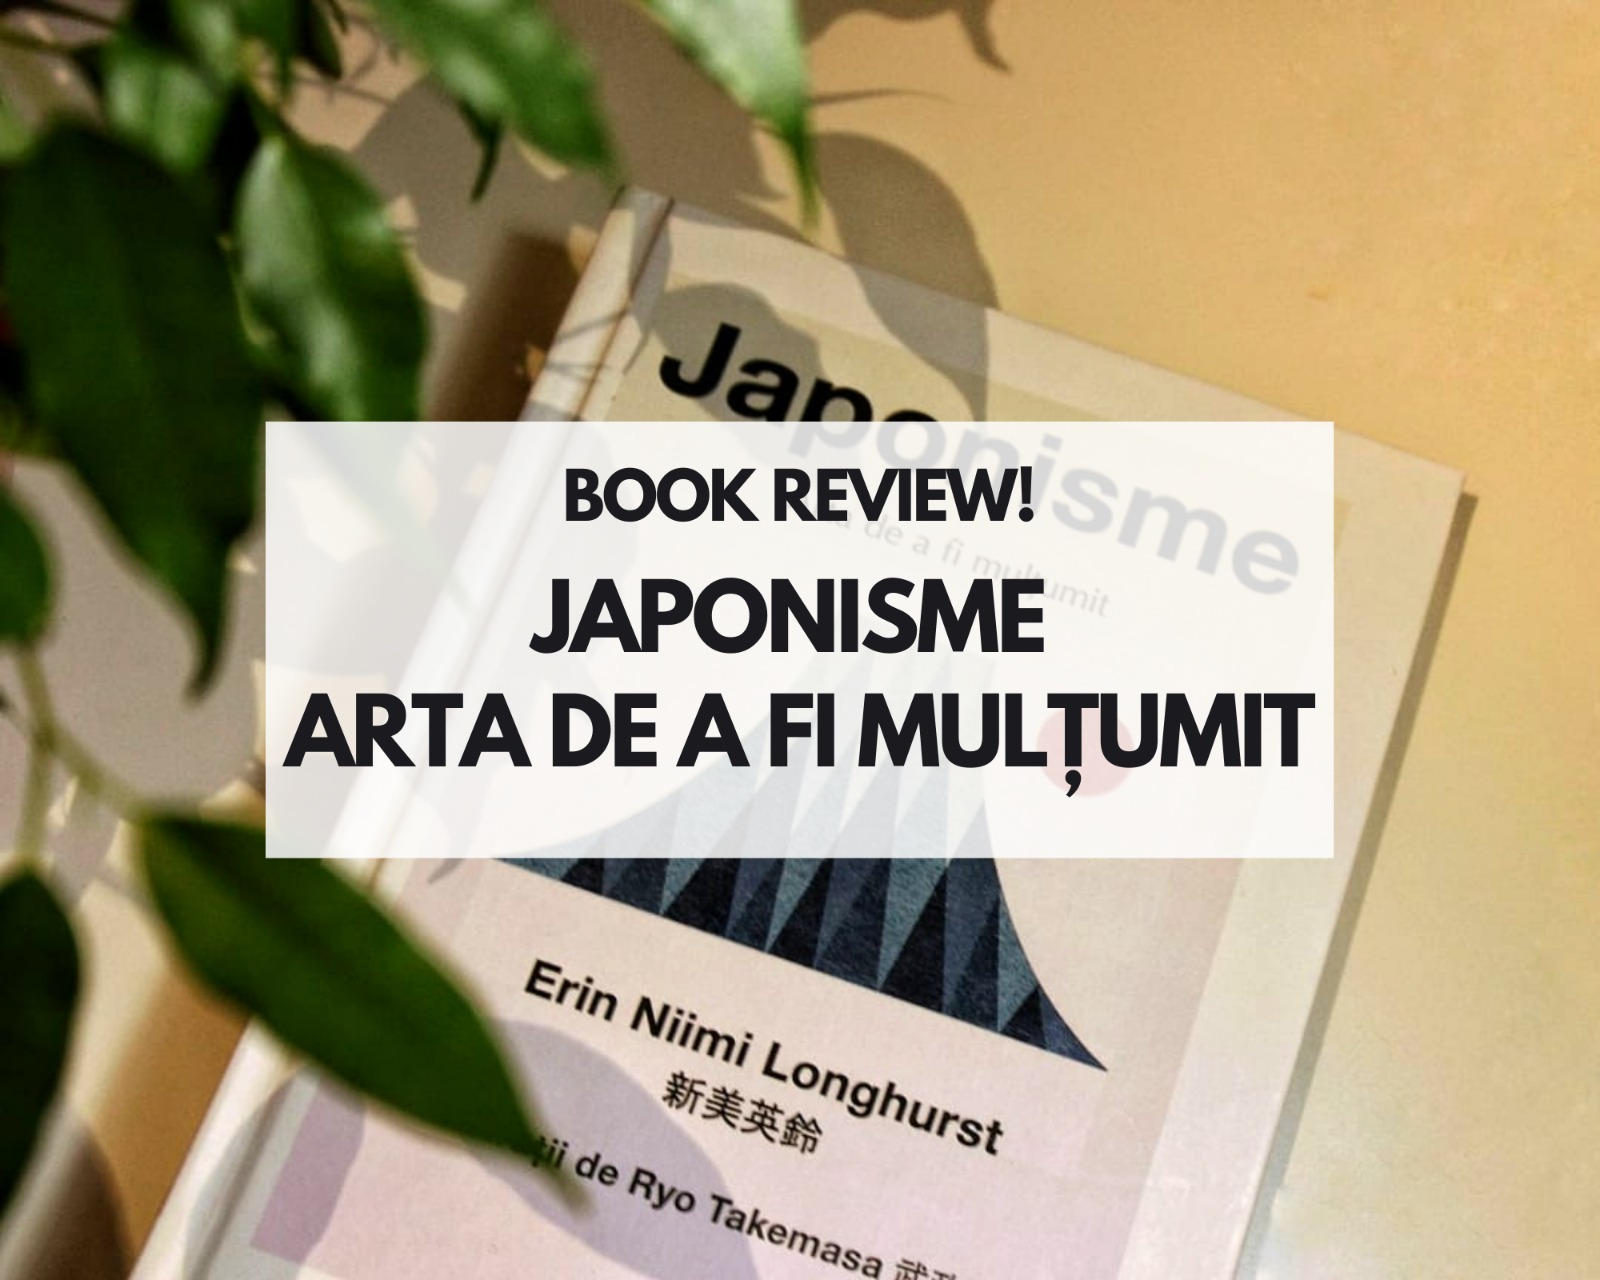 Japonisme, Arta de a fi mulțumit - Review carte